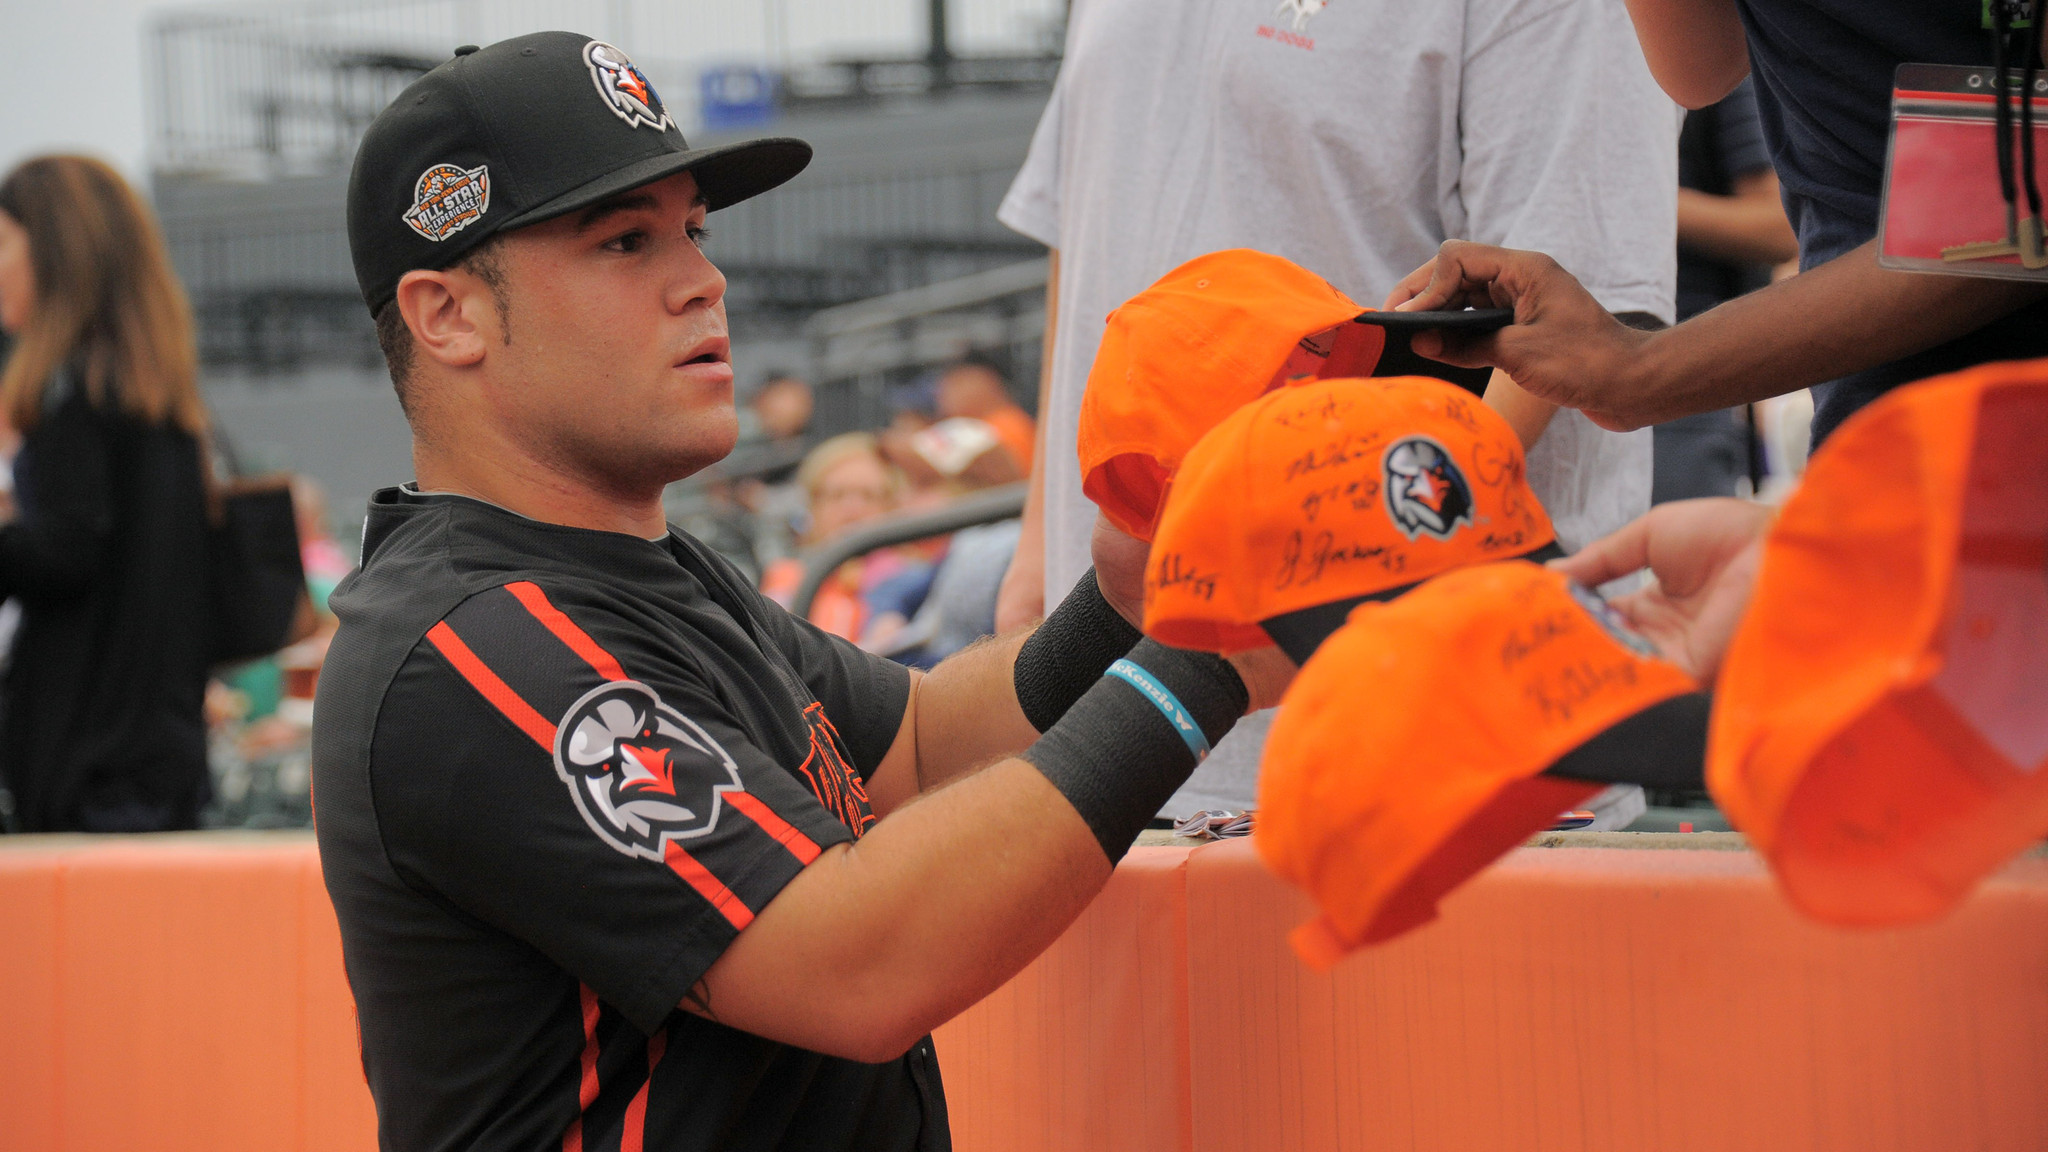 Bal-baltimore-orioles-farm-system-earns-low-rankings-as-team-debates-keeping-picks-or-signing-free-agent-20160211